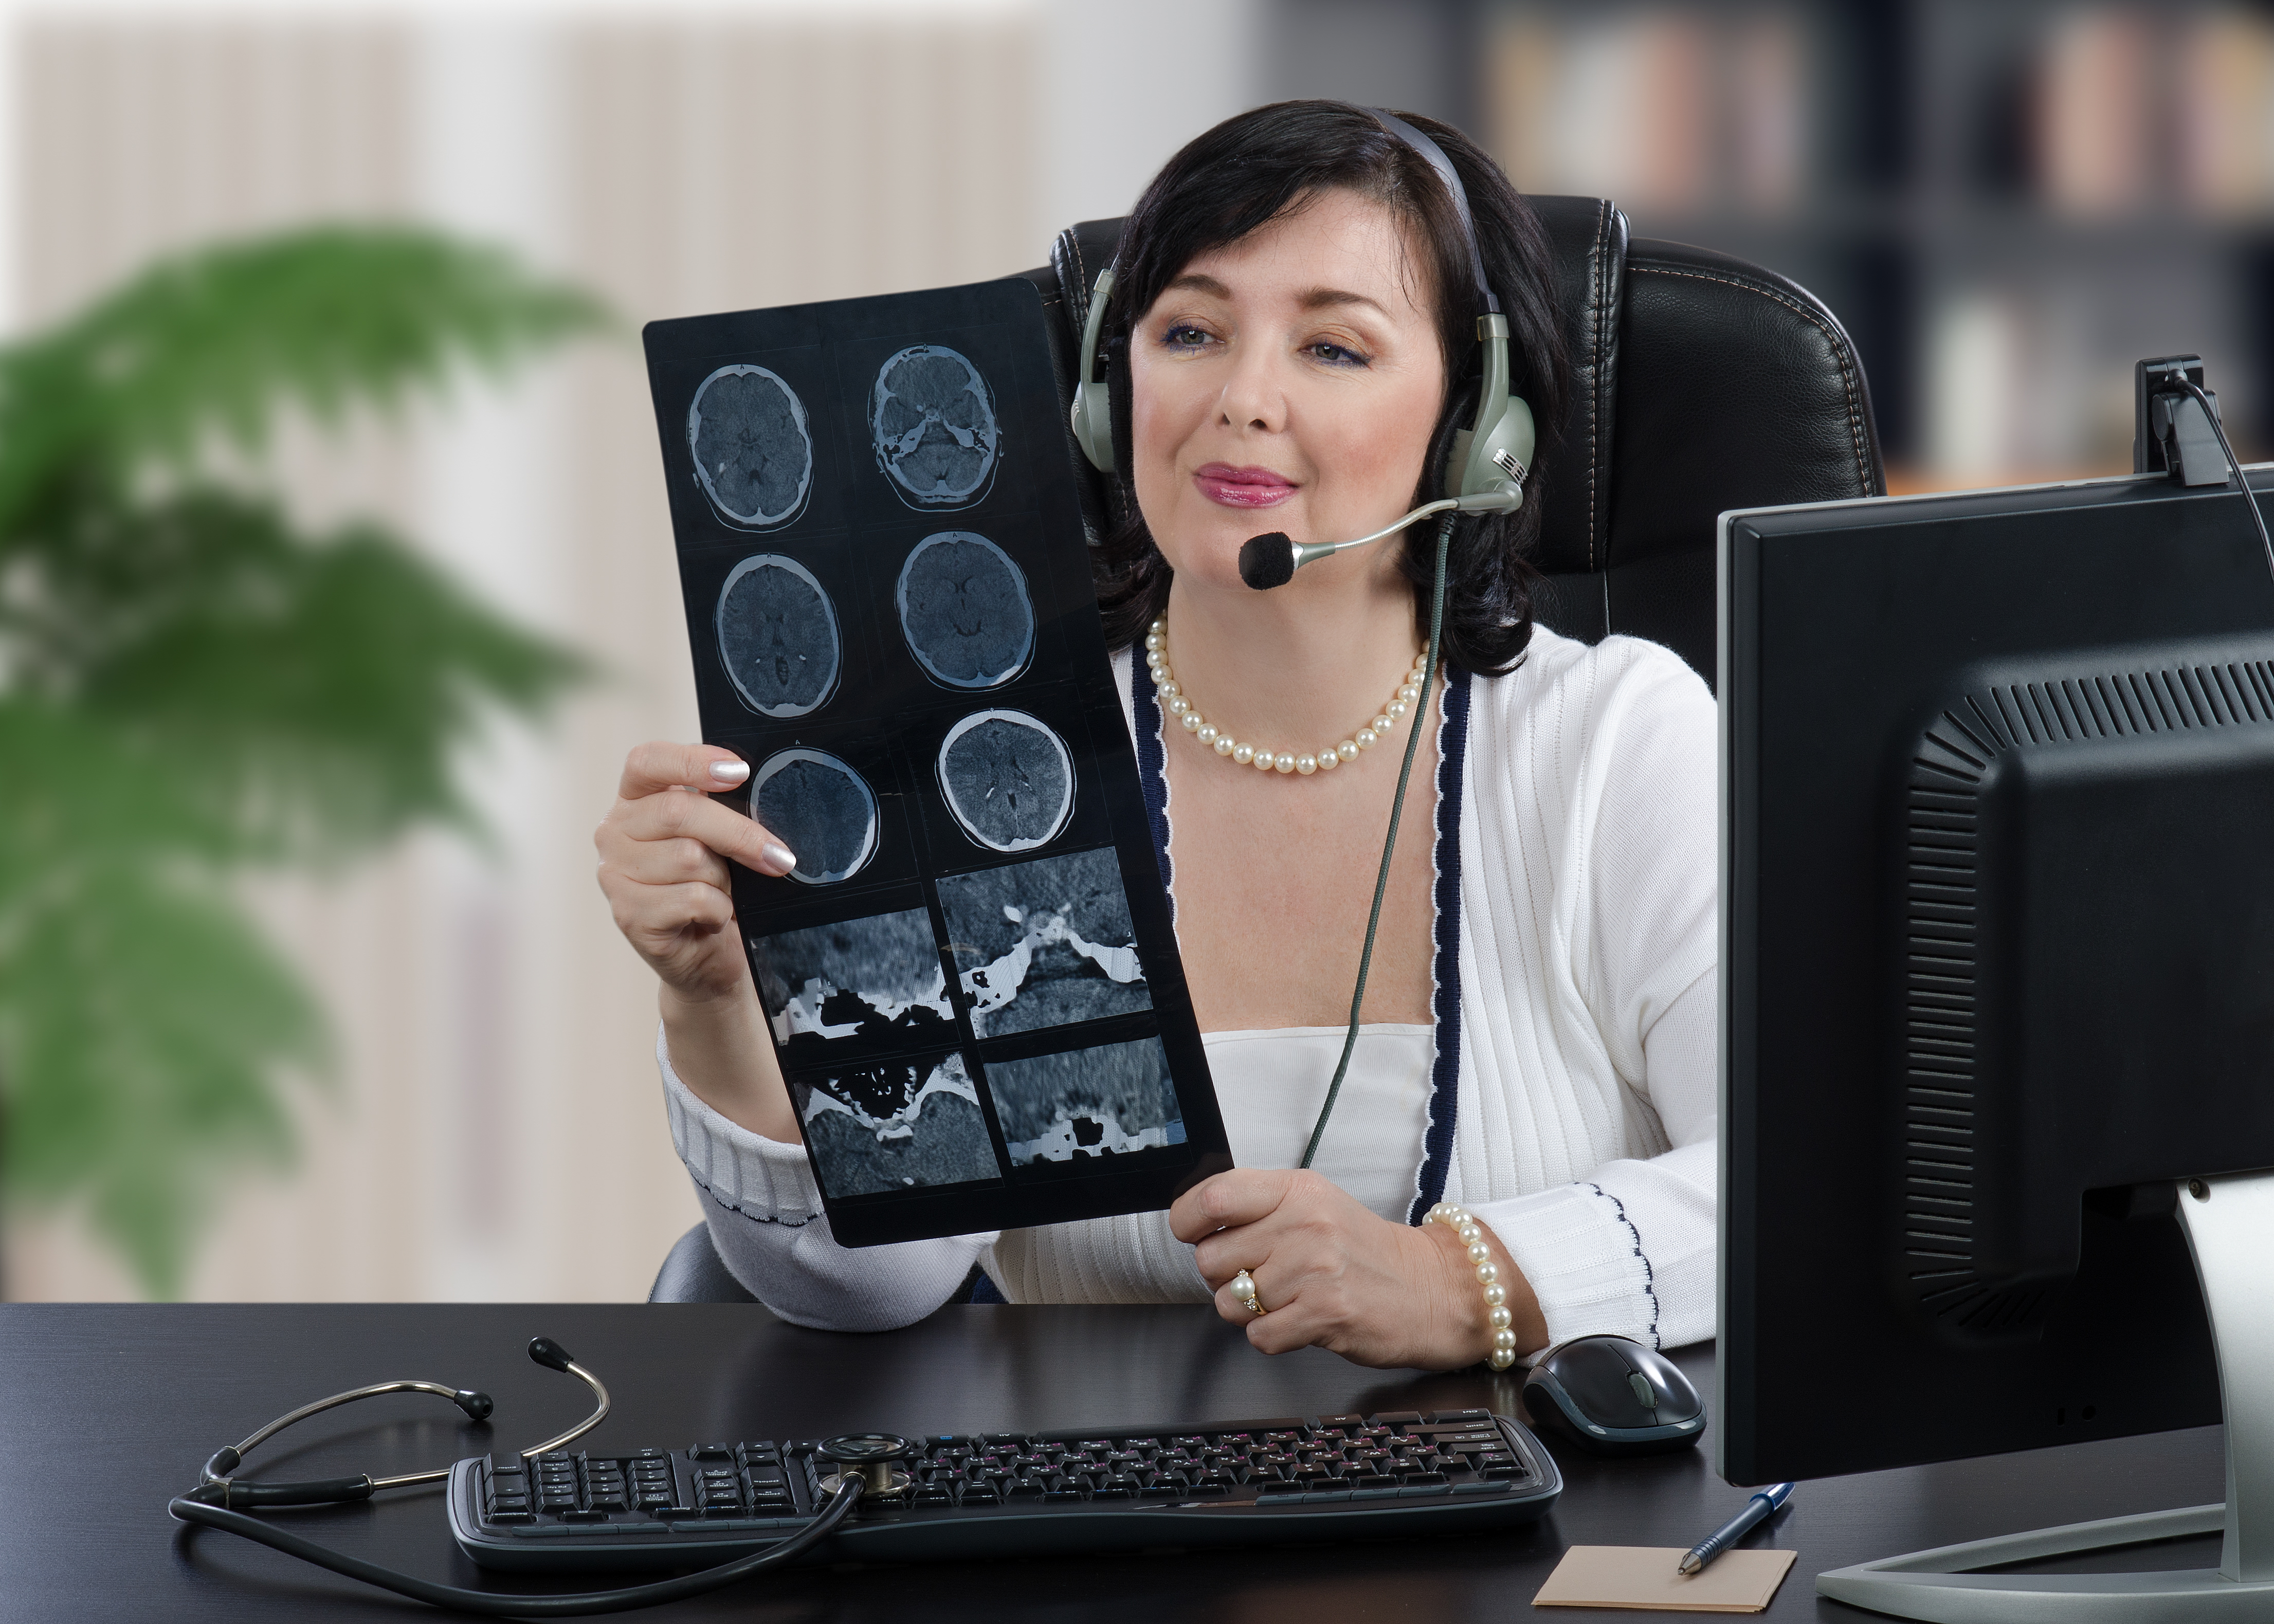 The Best Telemedicine Software Reviews of 2019